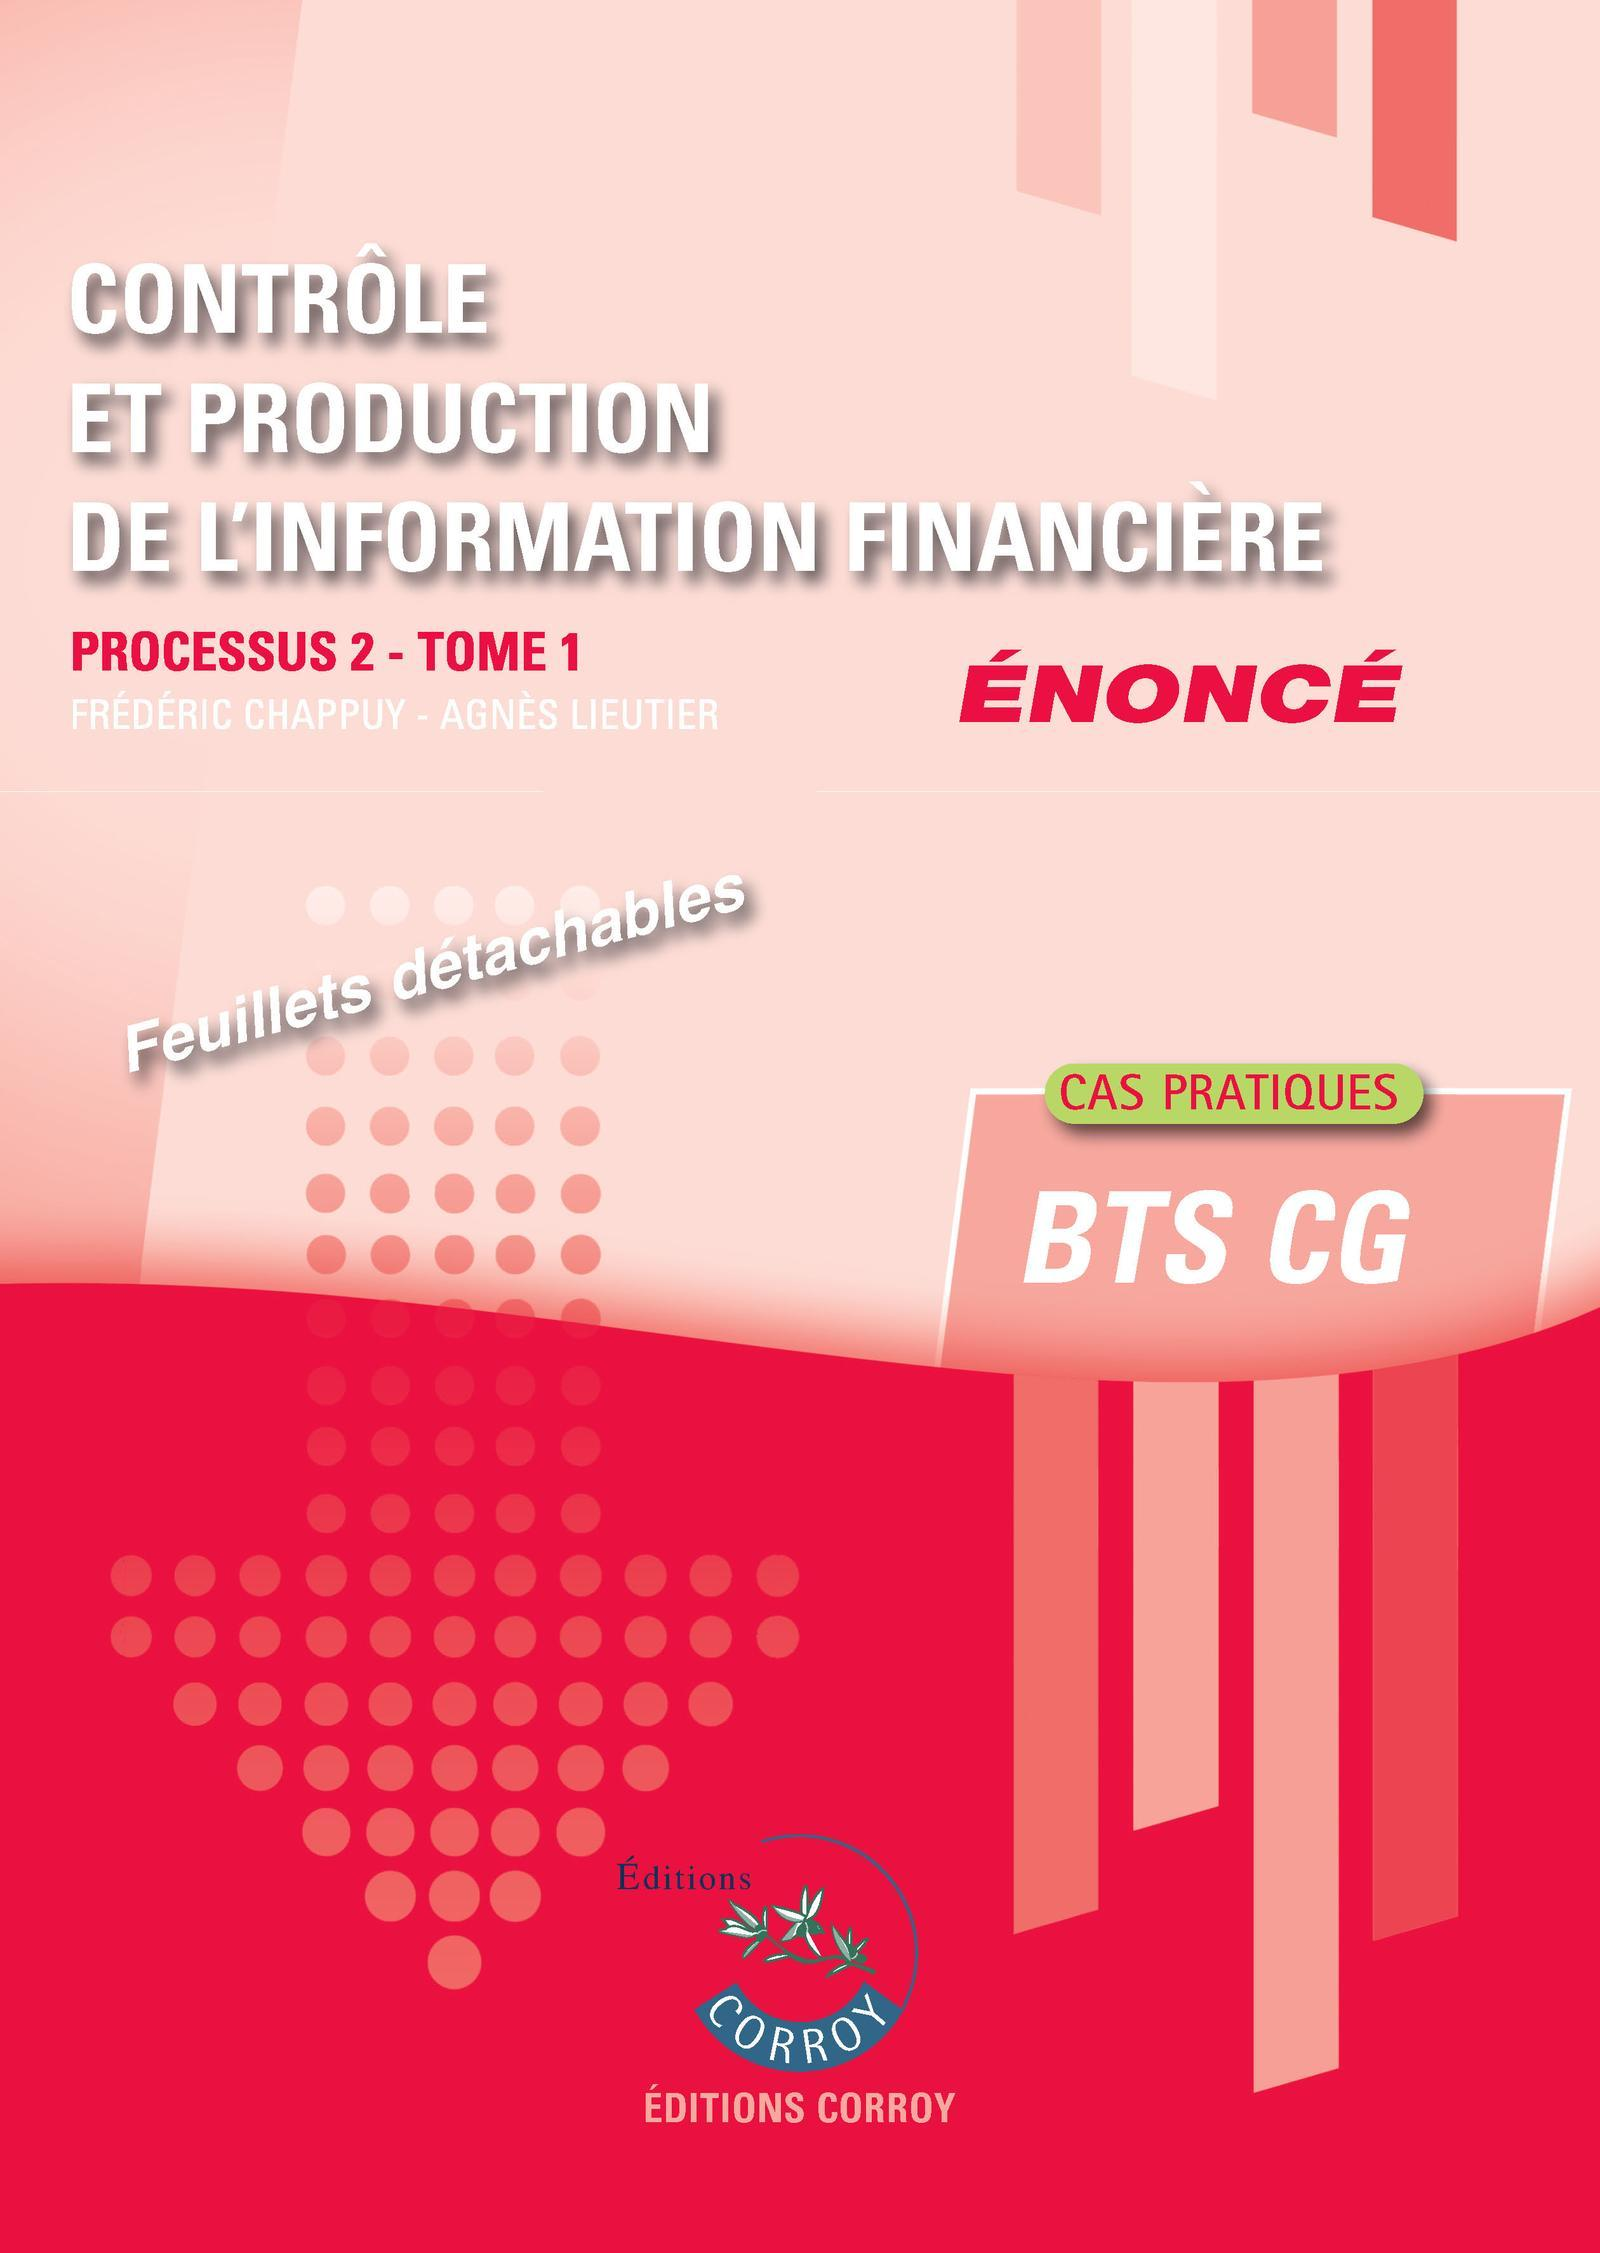 CONTROLE ET PRODUCTION DE L'INFORMATION FINANCIERE T1 - ENONCE